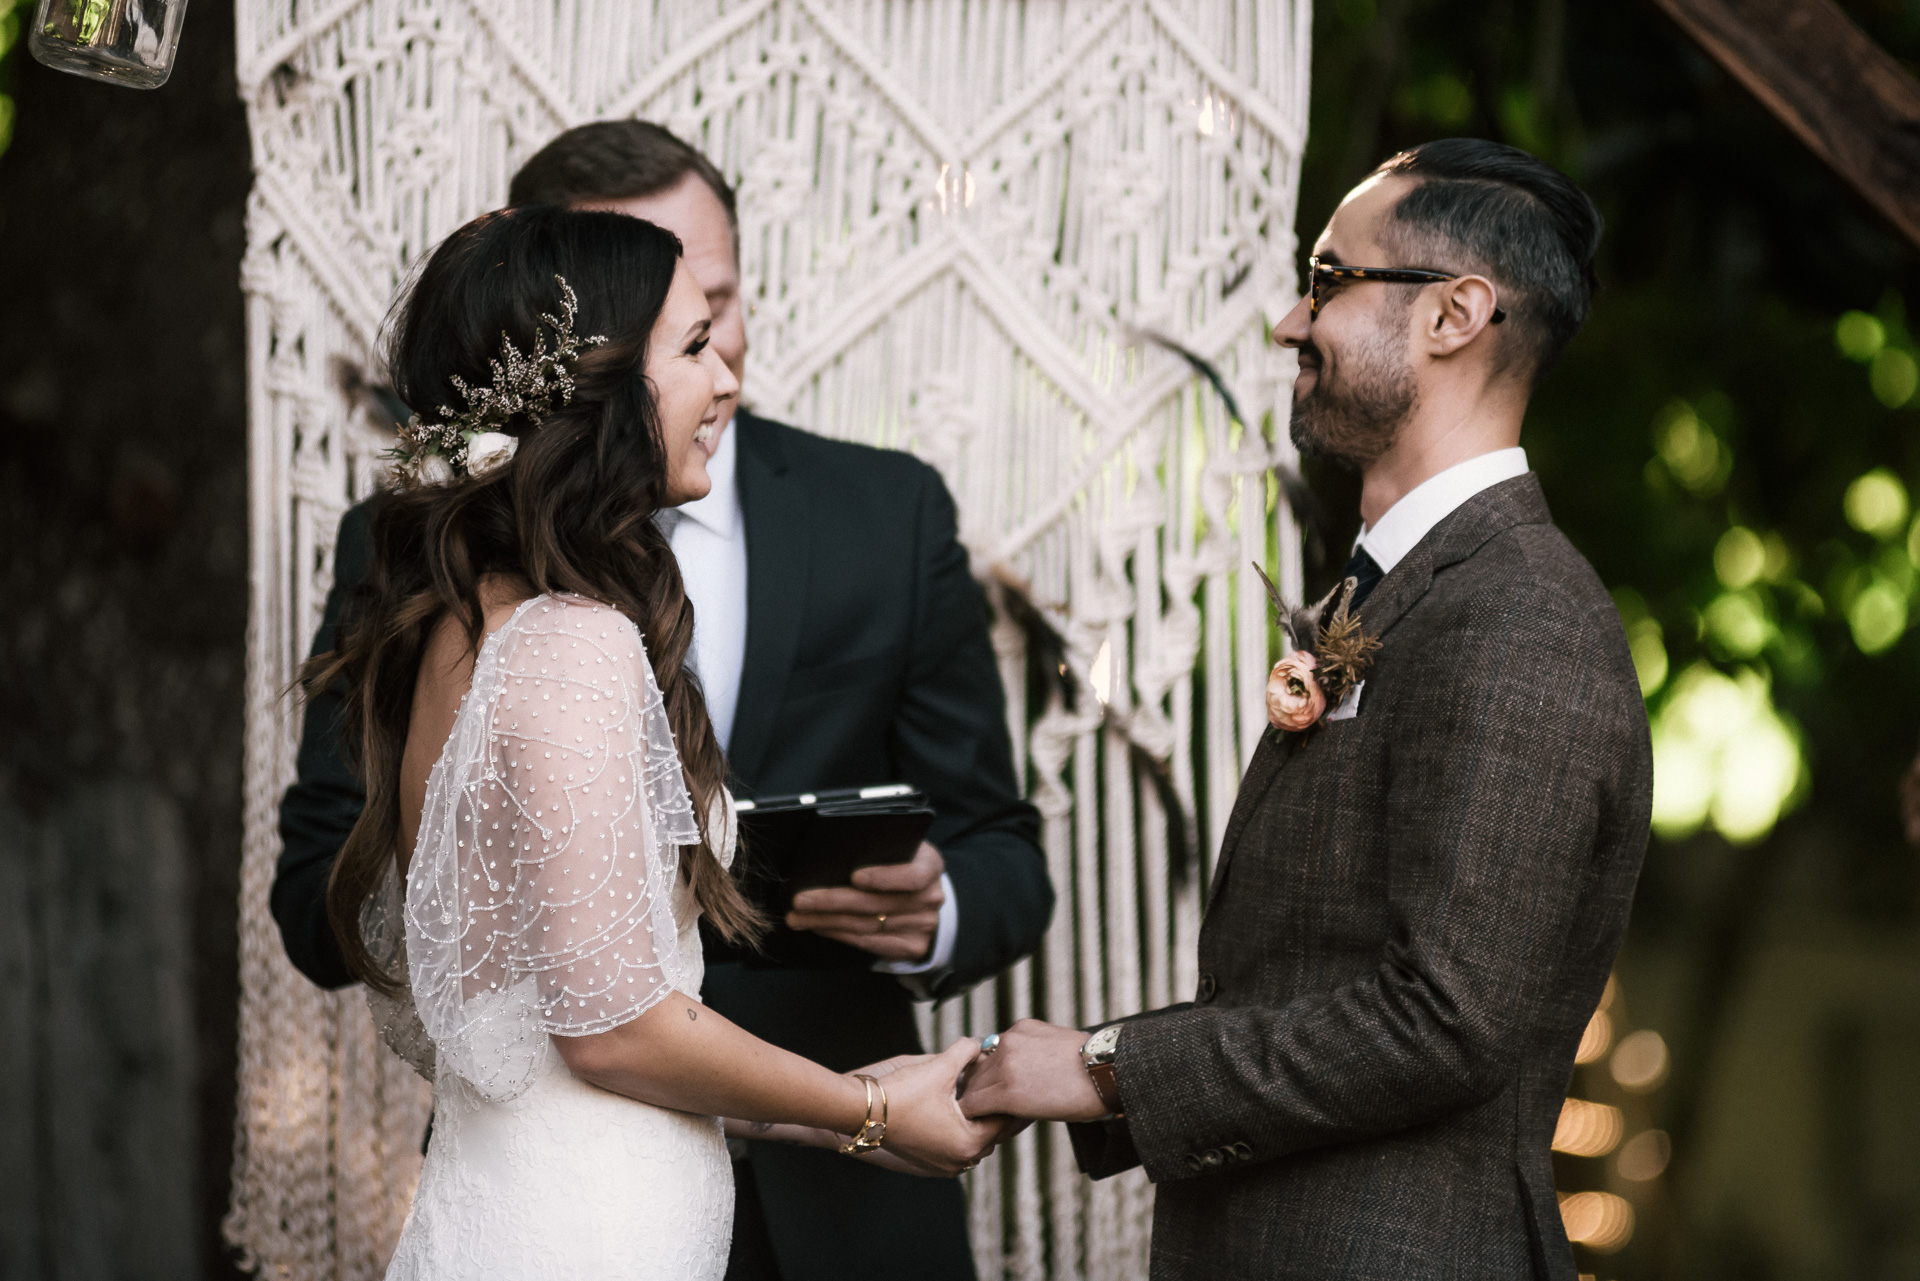 bride smiles at her groom shot by wedding photographer at the charming St. George Hotel in Volcano California